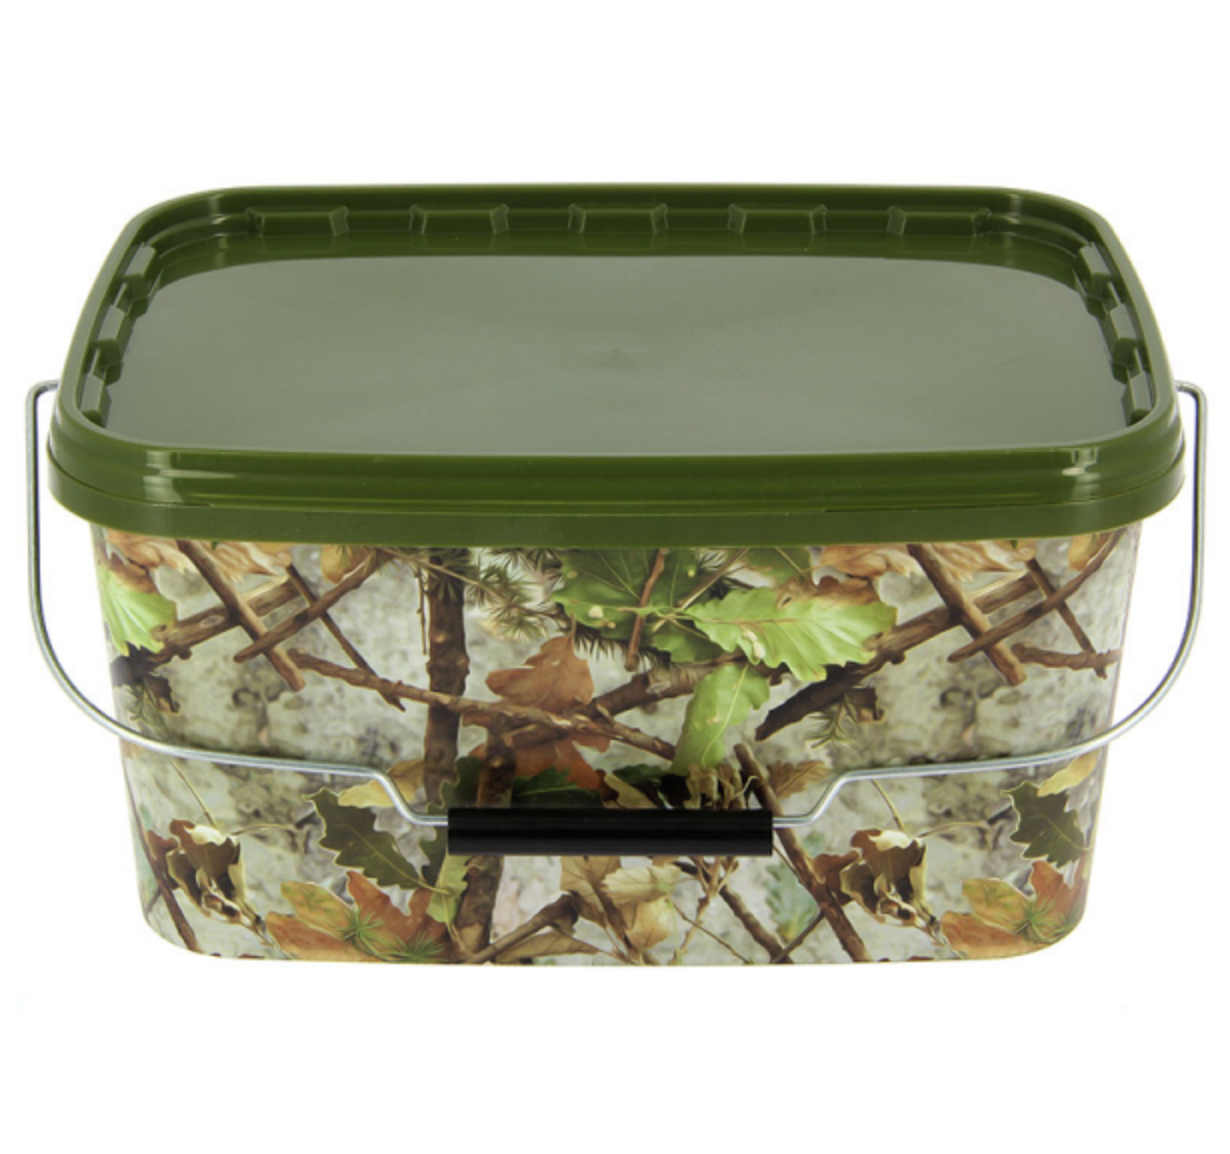 Camo Square Bait Bucket